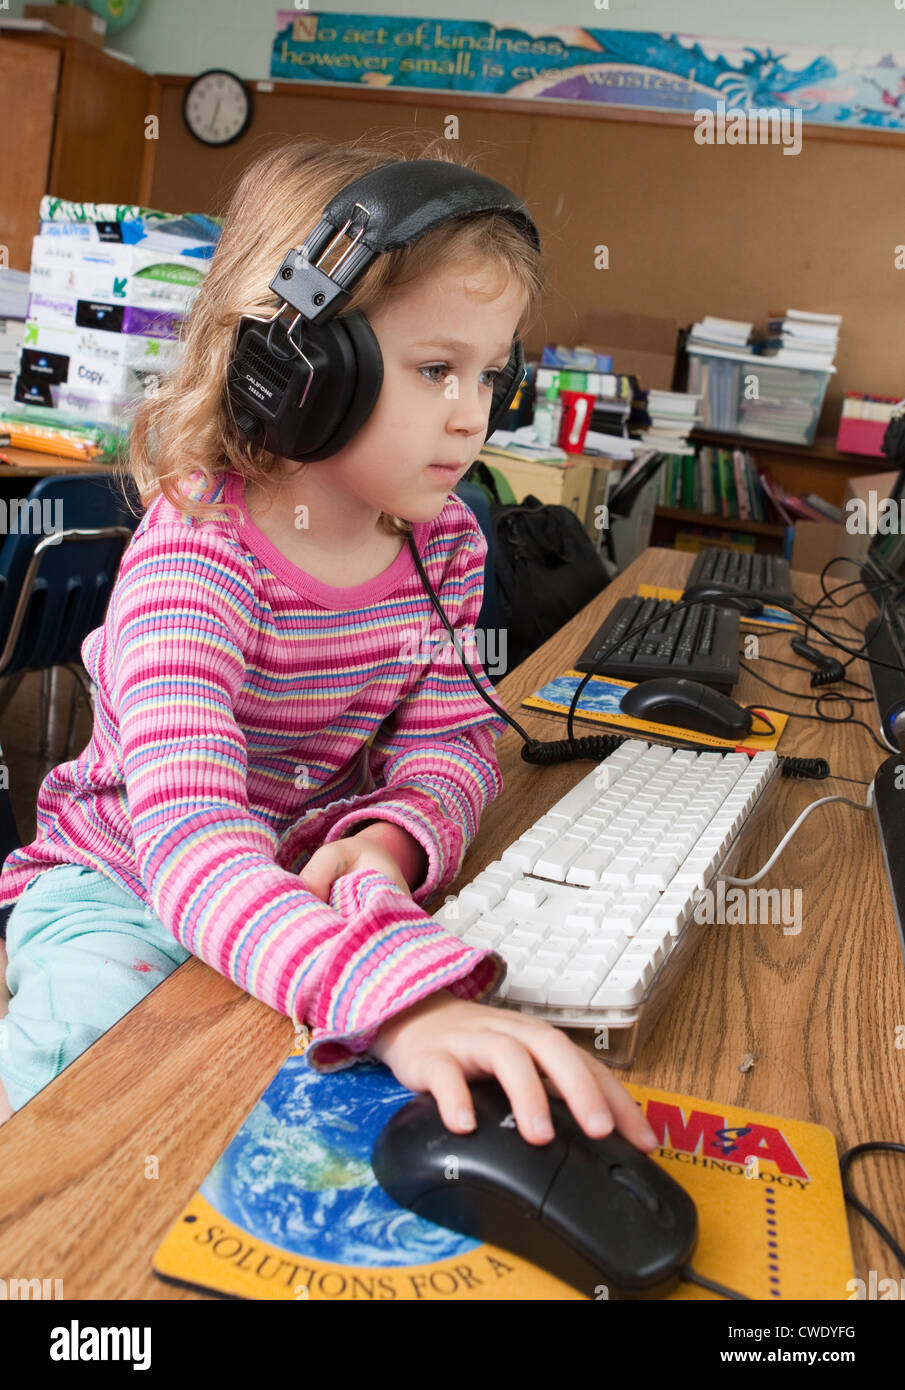 Young 6 year old white girl uses headphones and computer mouse to use educational computer games in classroom - Stock Image